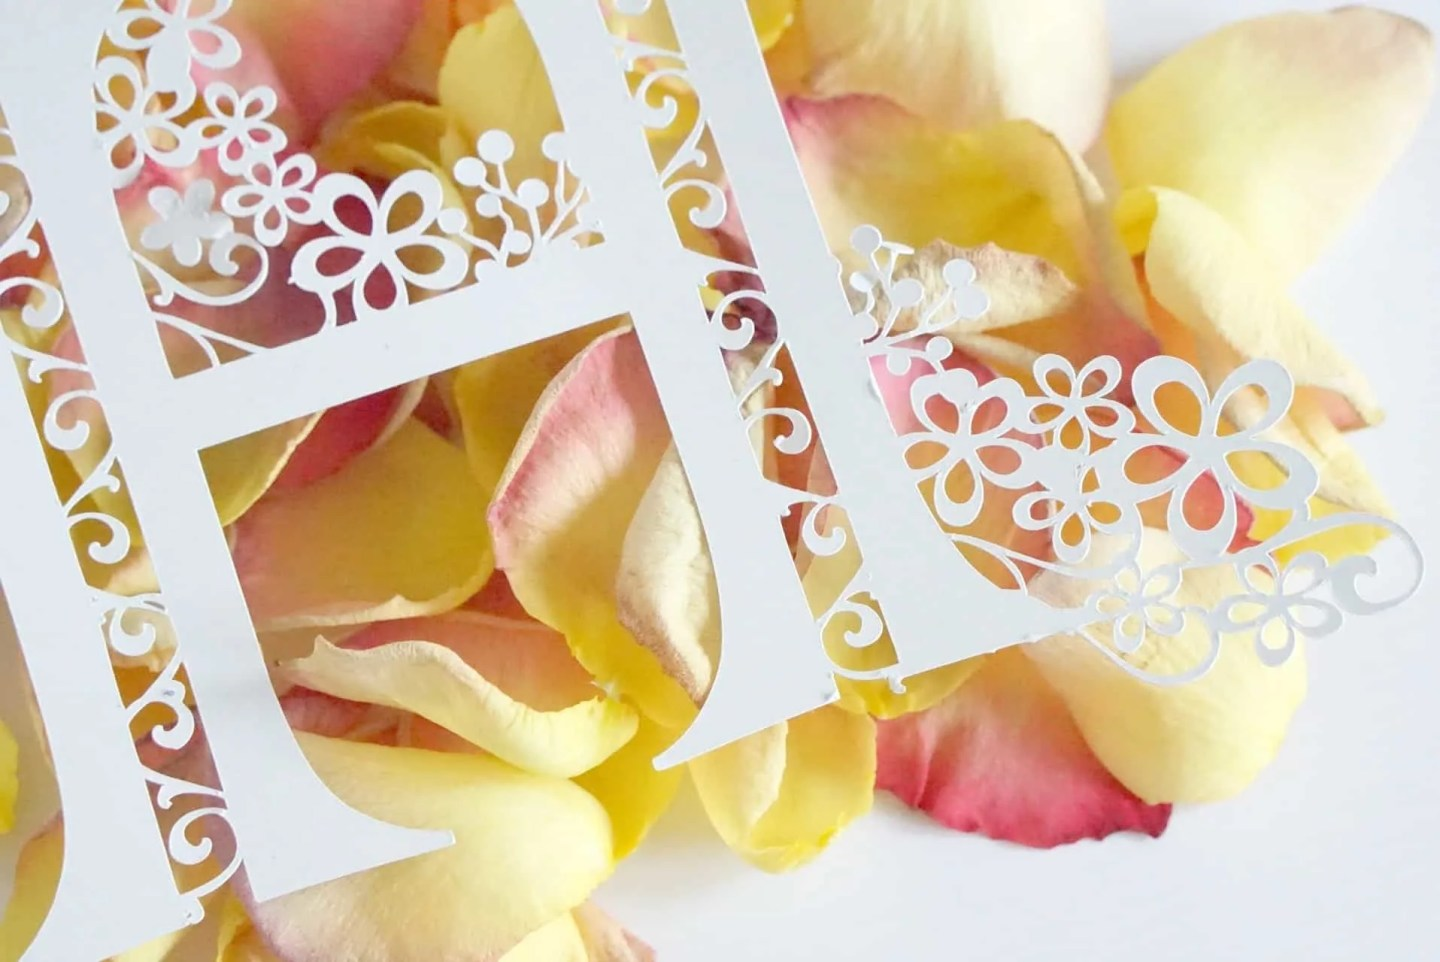 How to make a paper cut with Cricut Maker www.extraordinarychaos.com